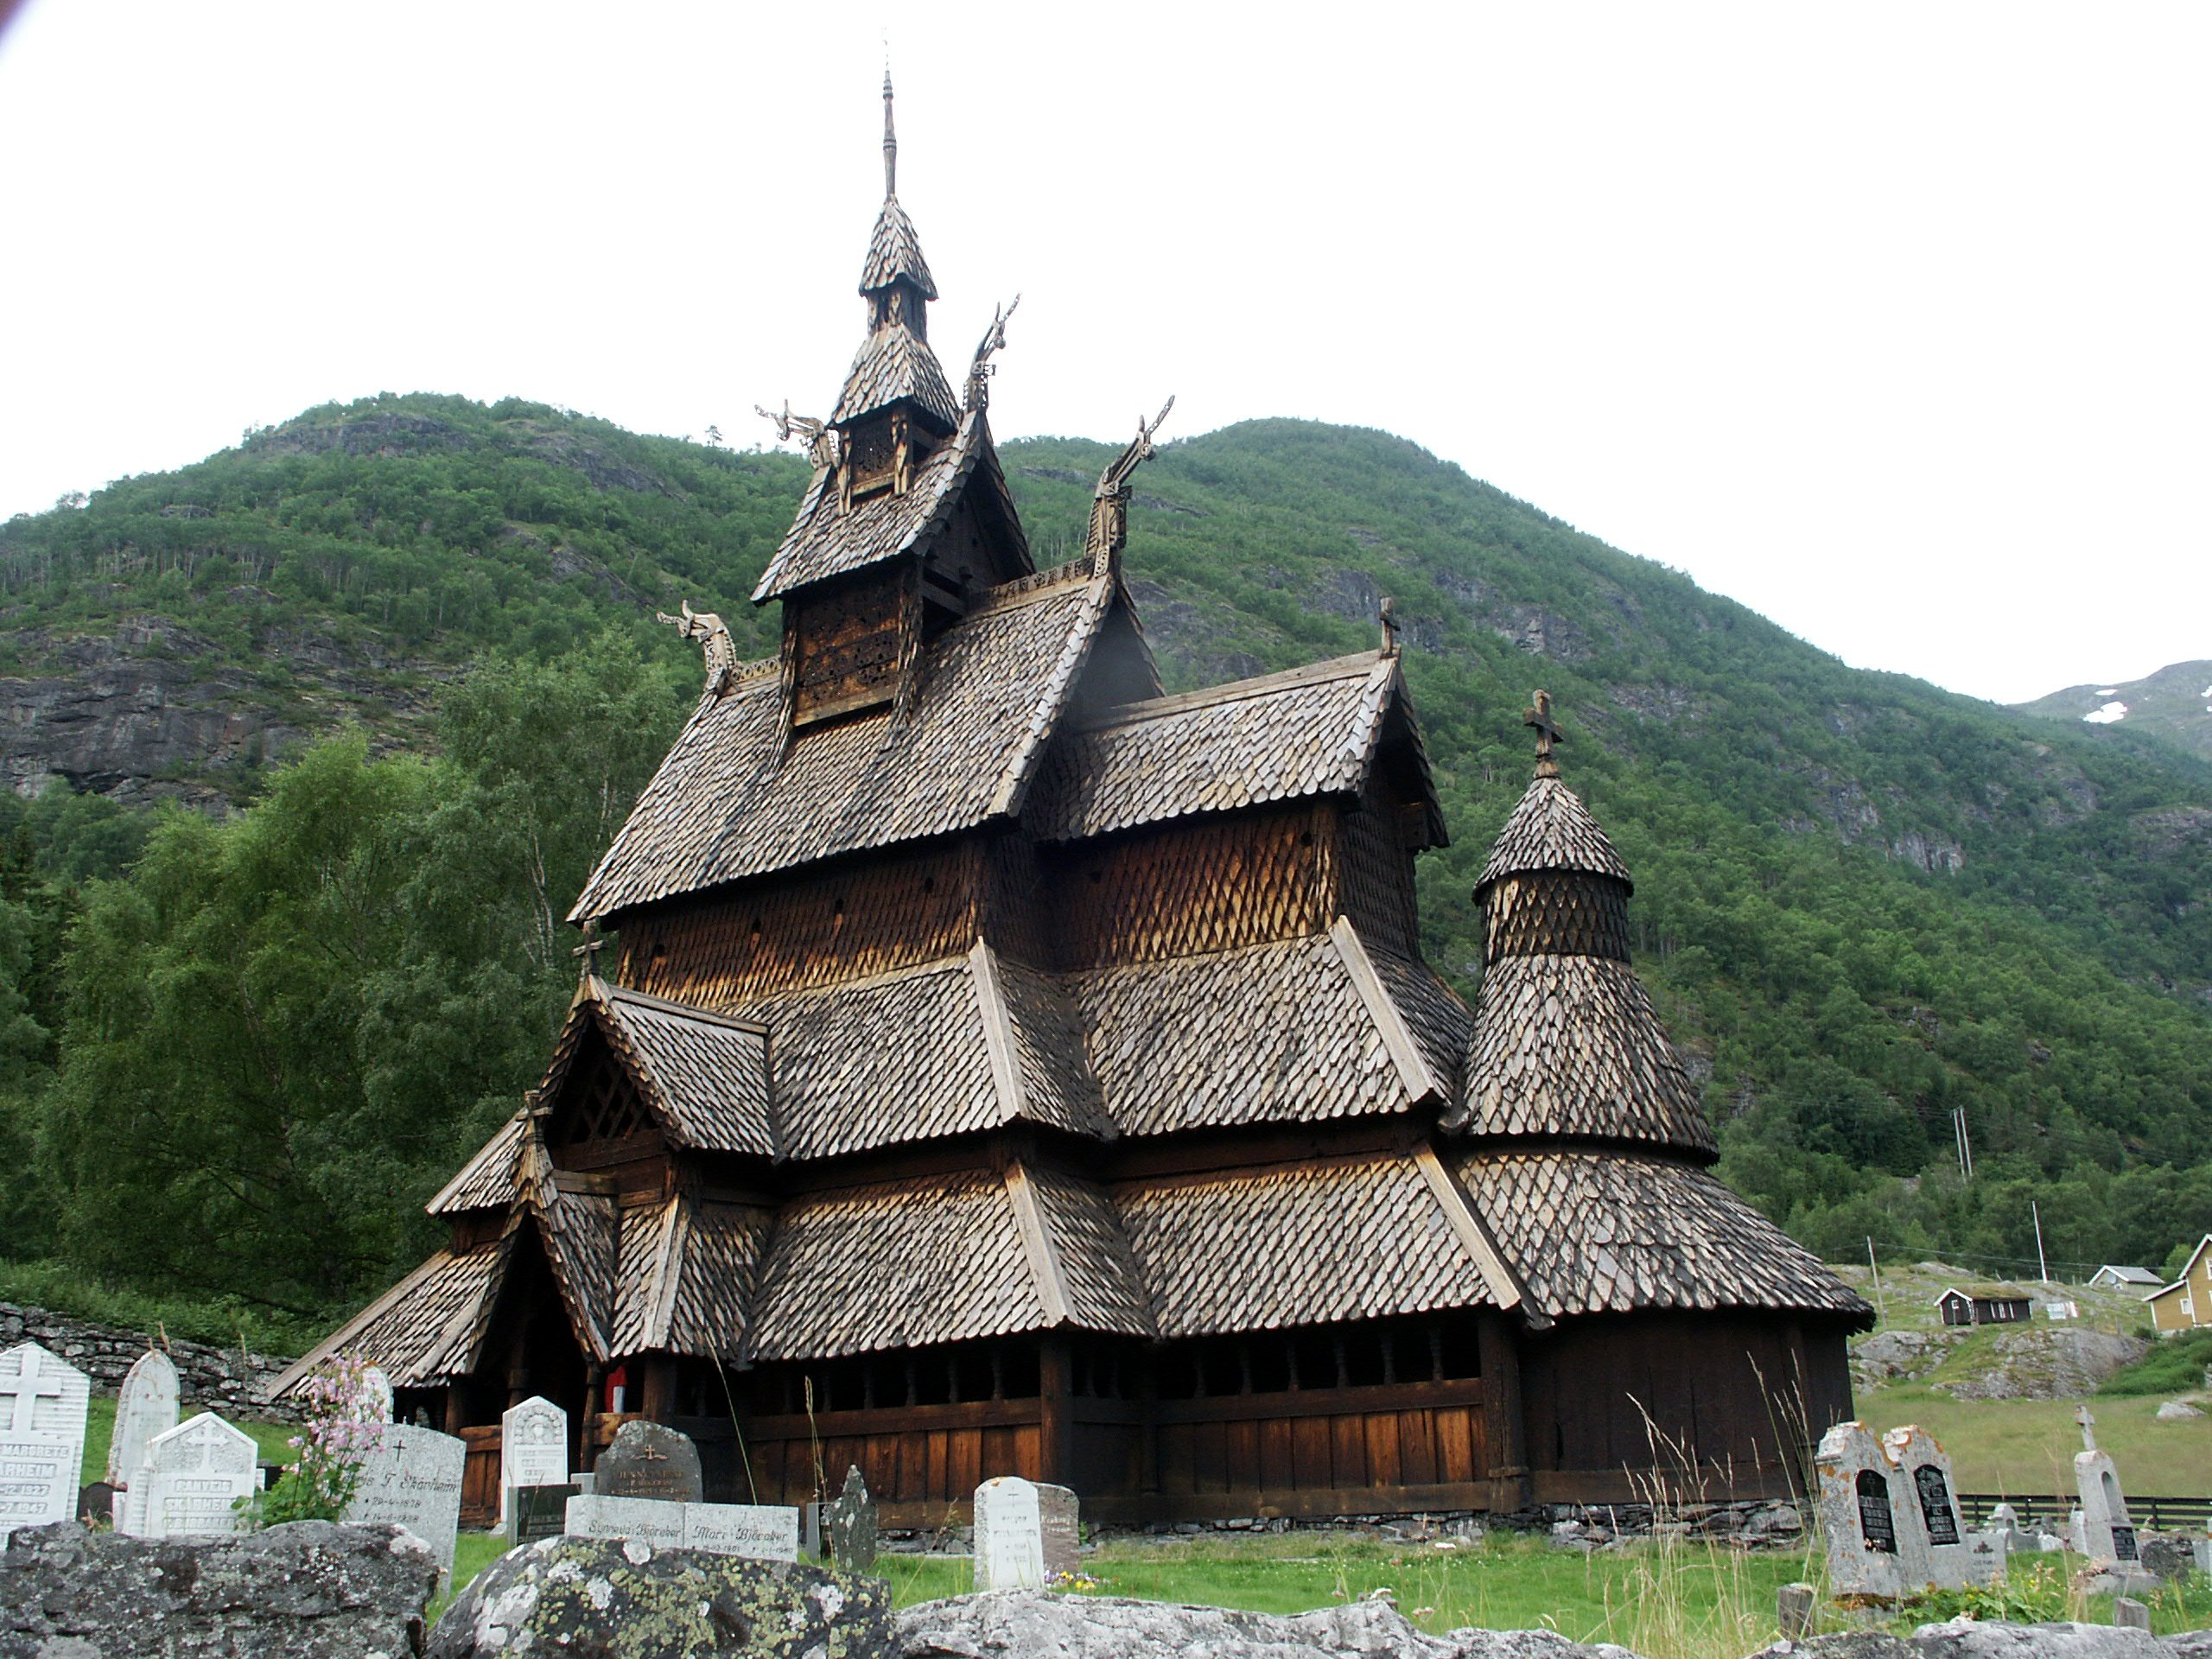 borgund-stave-church-norway-2